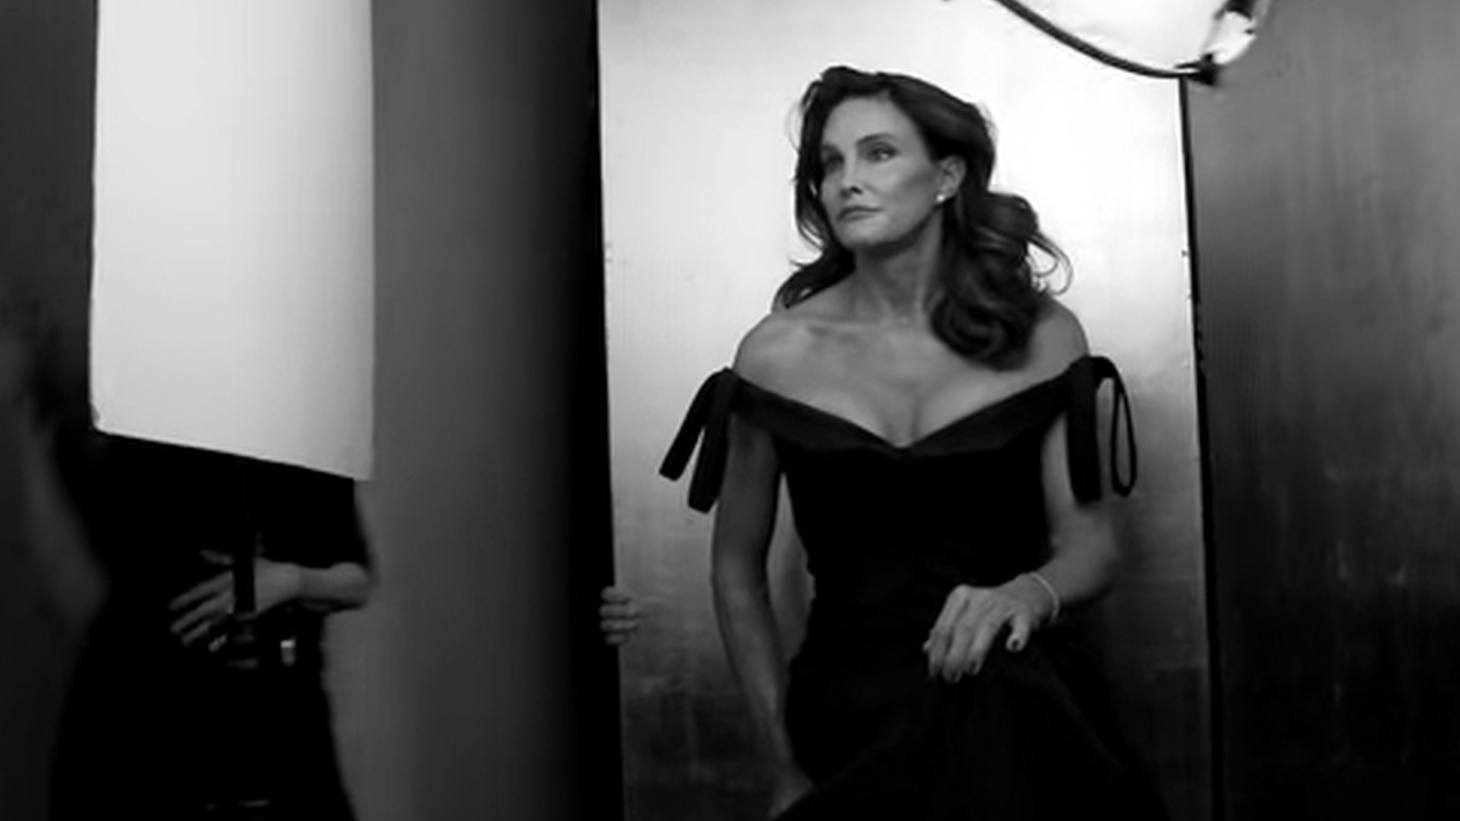 The former Bruce Jenner is transgender and now called Caitlyn Jenner. Many young people, meanwhile, don't want to be identified as any particular gender at all. All of this has left some confused about the modern world of gender politics and terminology. Madeleine hosts a primer on the new gender vocabulary.